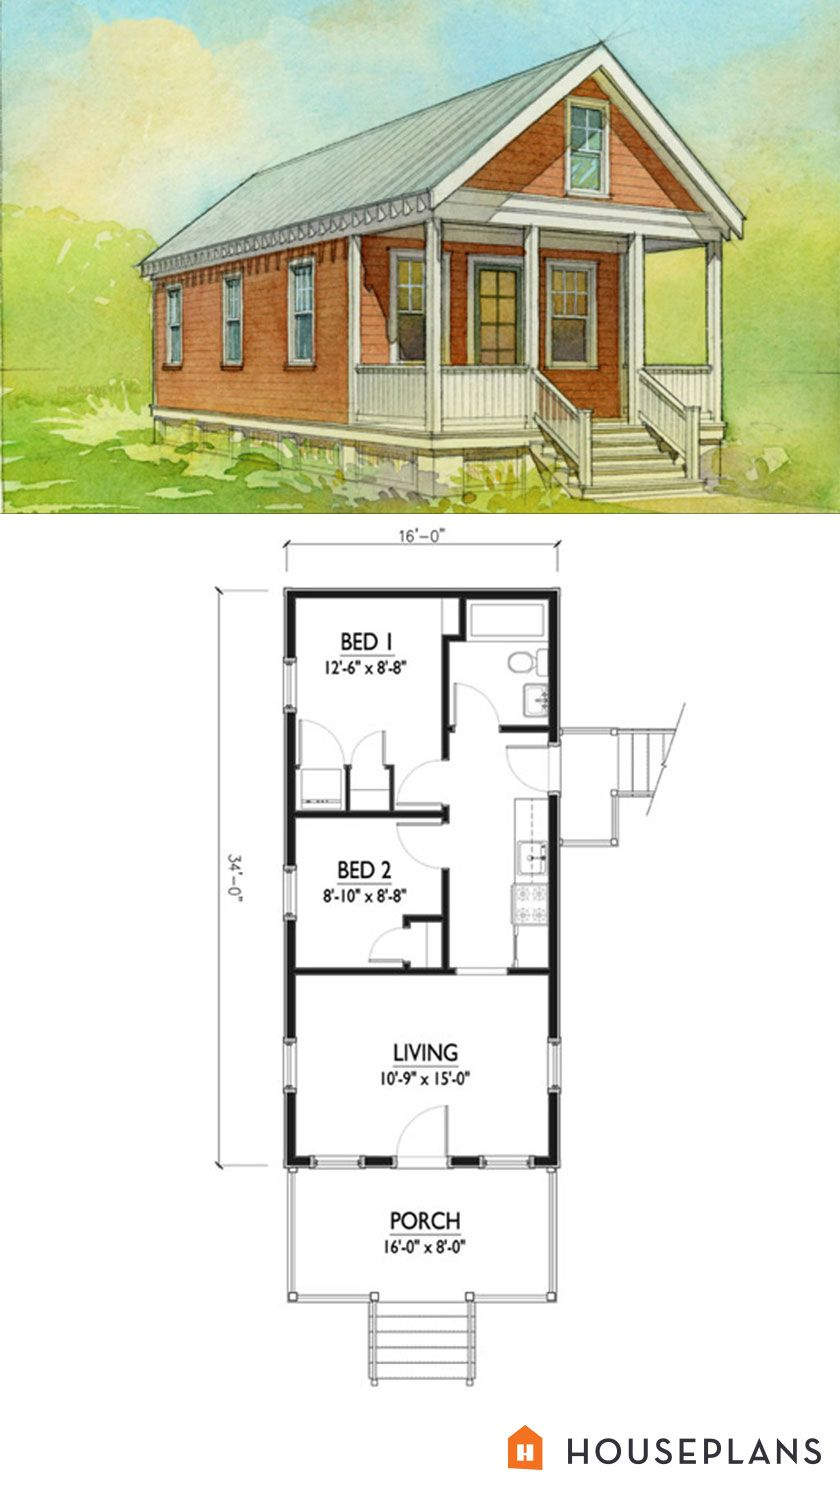 Small katrina cottage house plan 500sft 2br 1 bath by for Tiny cottage house plans